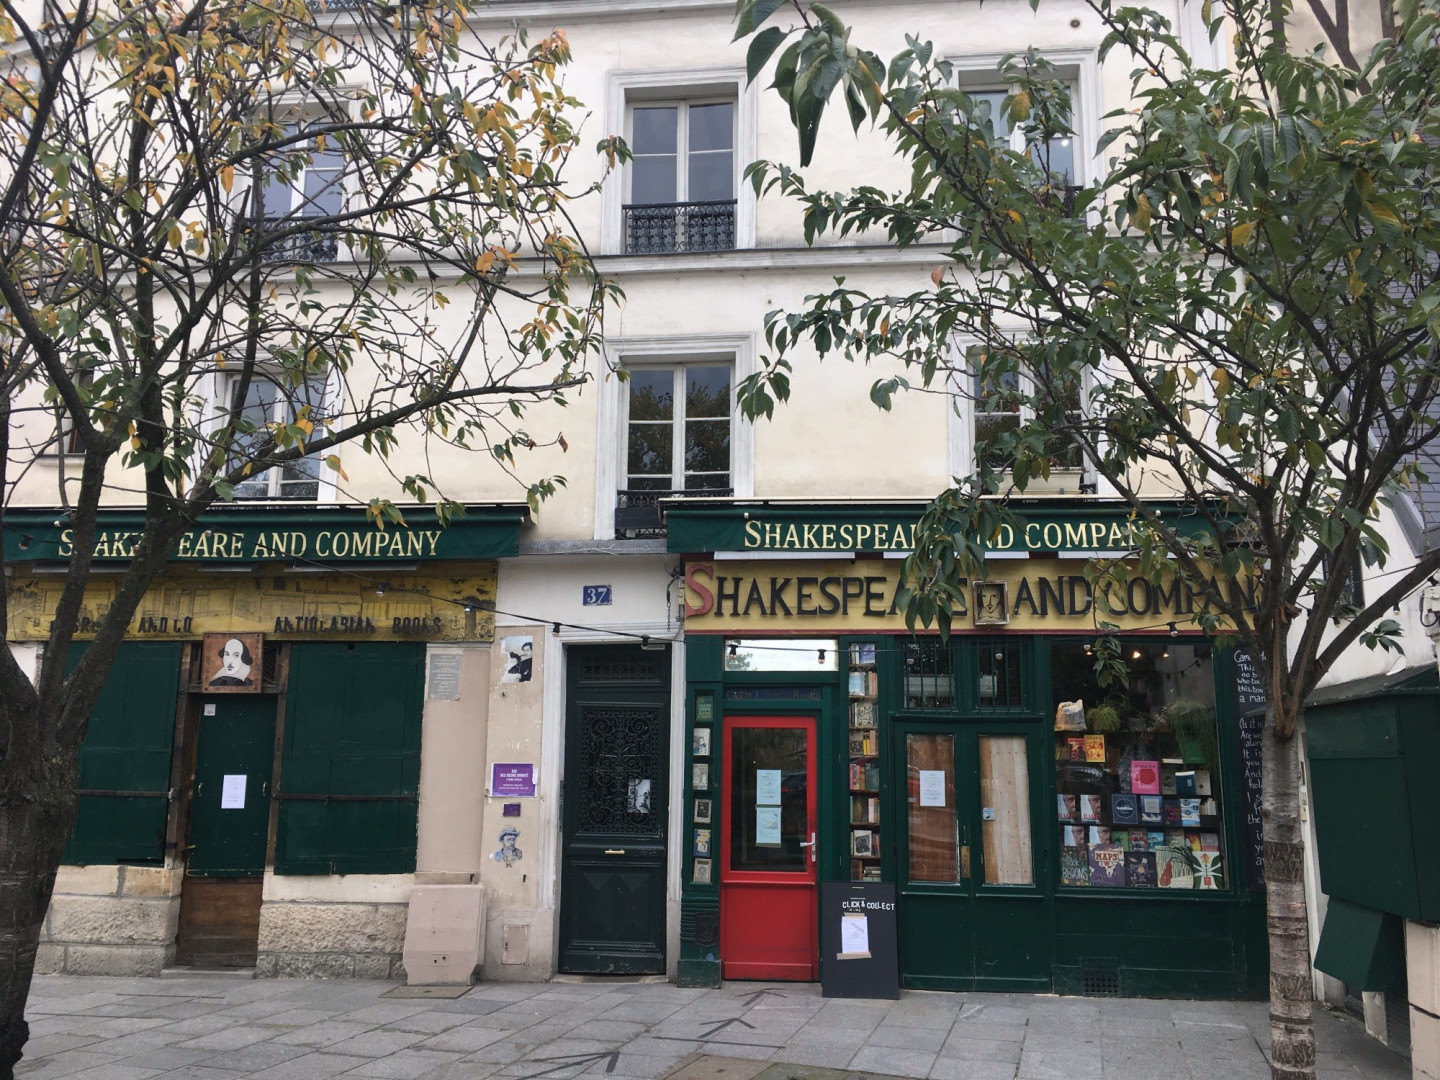 La librairie anglophone Shakespeare and Company, située en face de Note-Dame